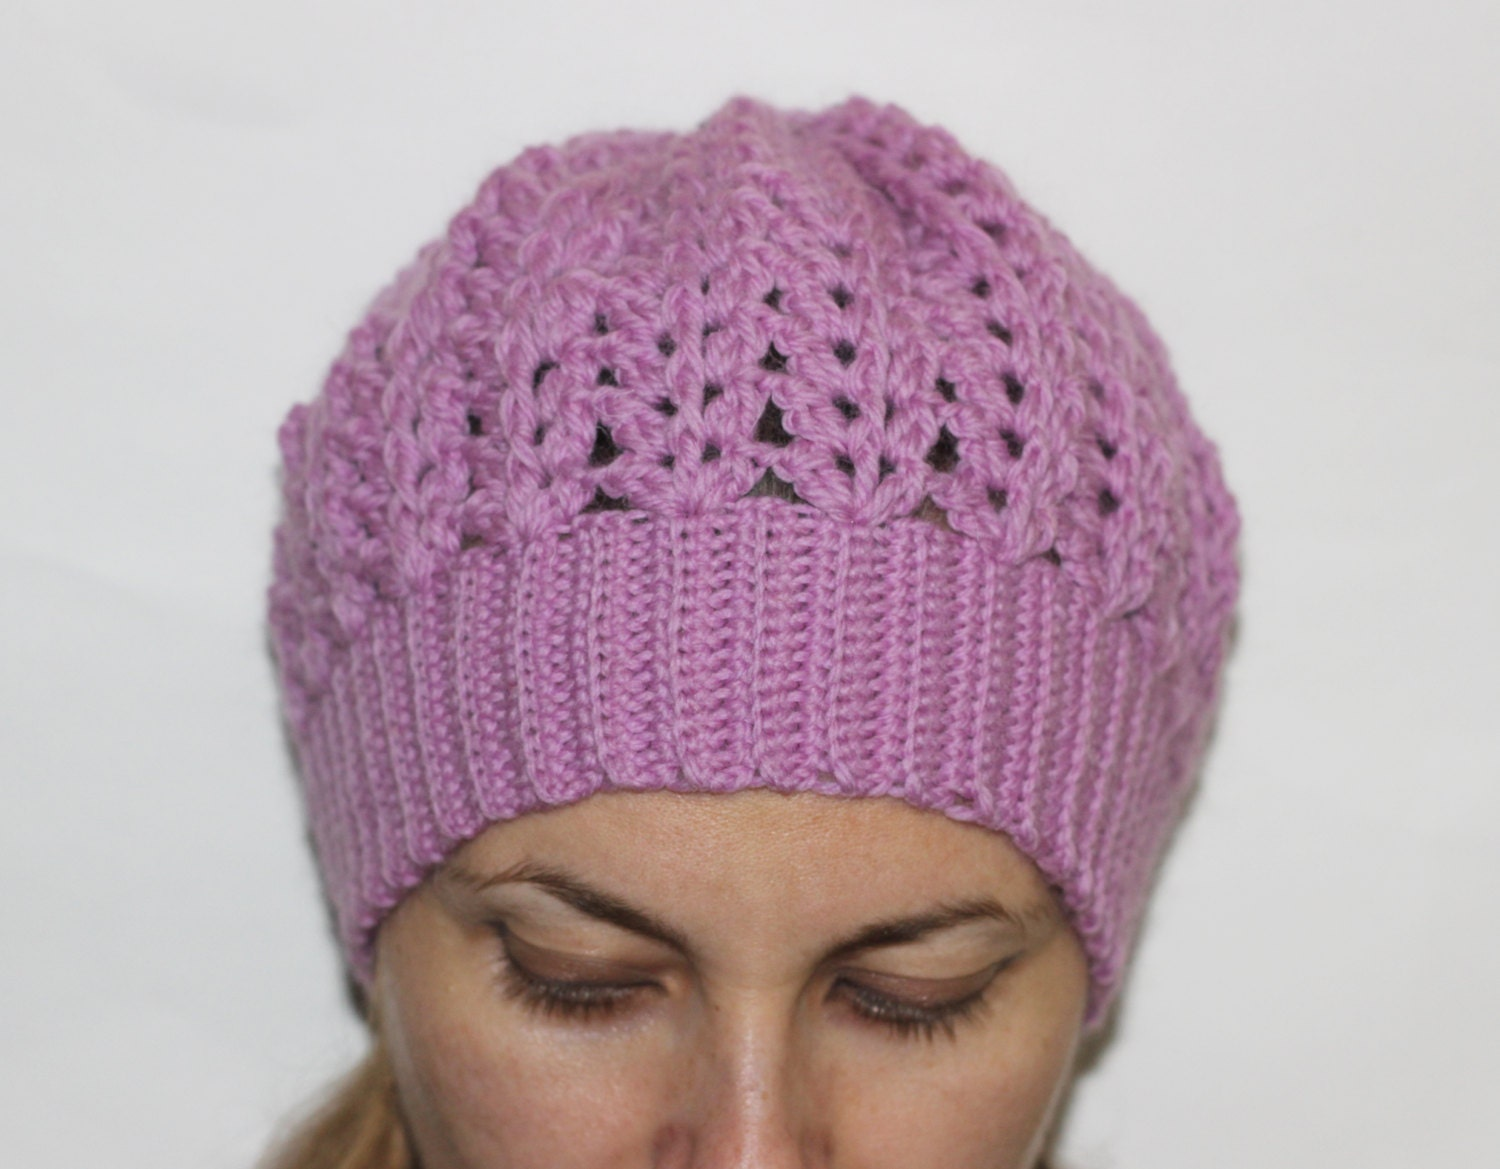 Crochet Lace Patterns Step By Step : PDF PATTERN step-by-step TUTORIAL Crochet lace hat with